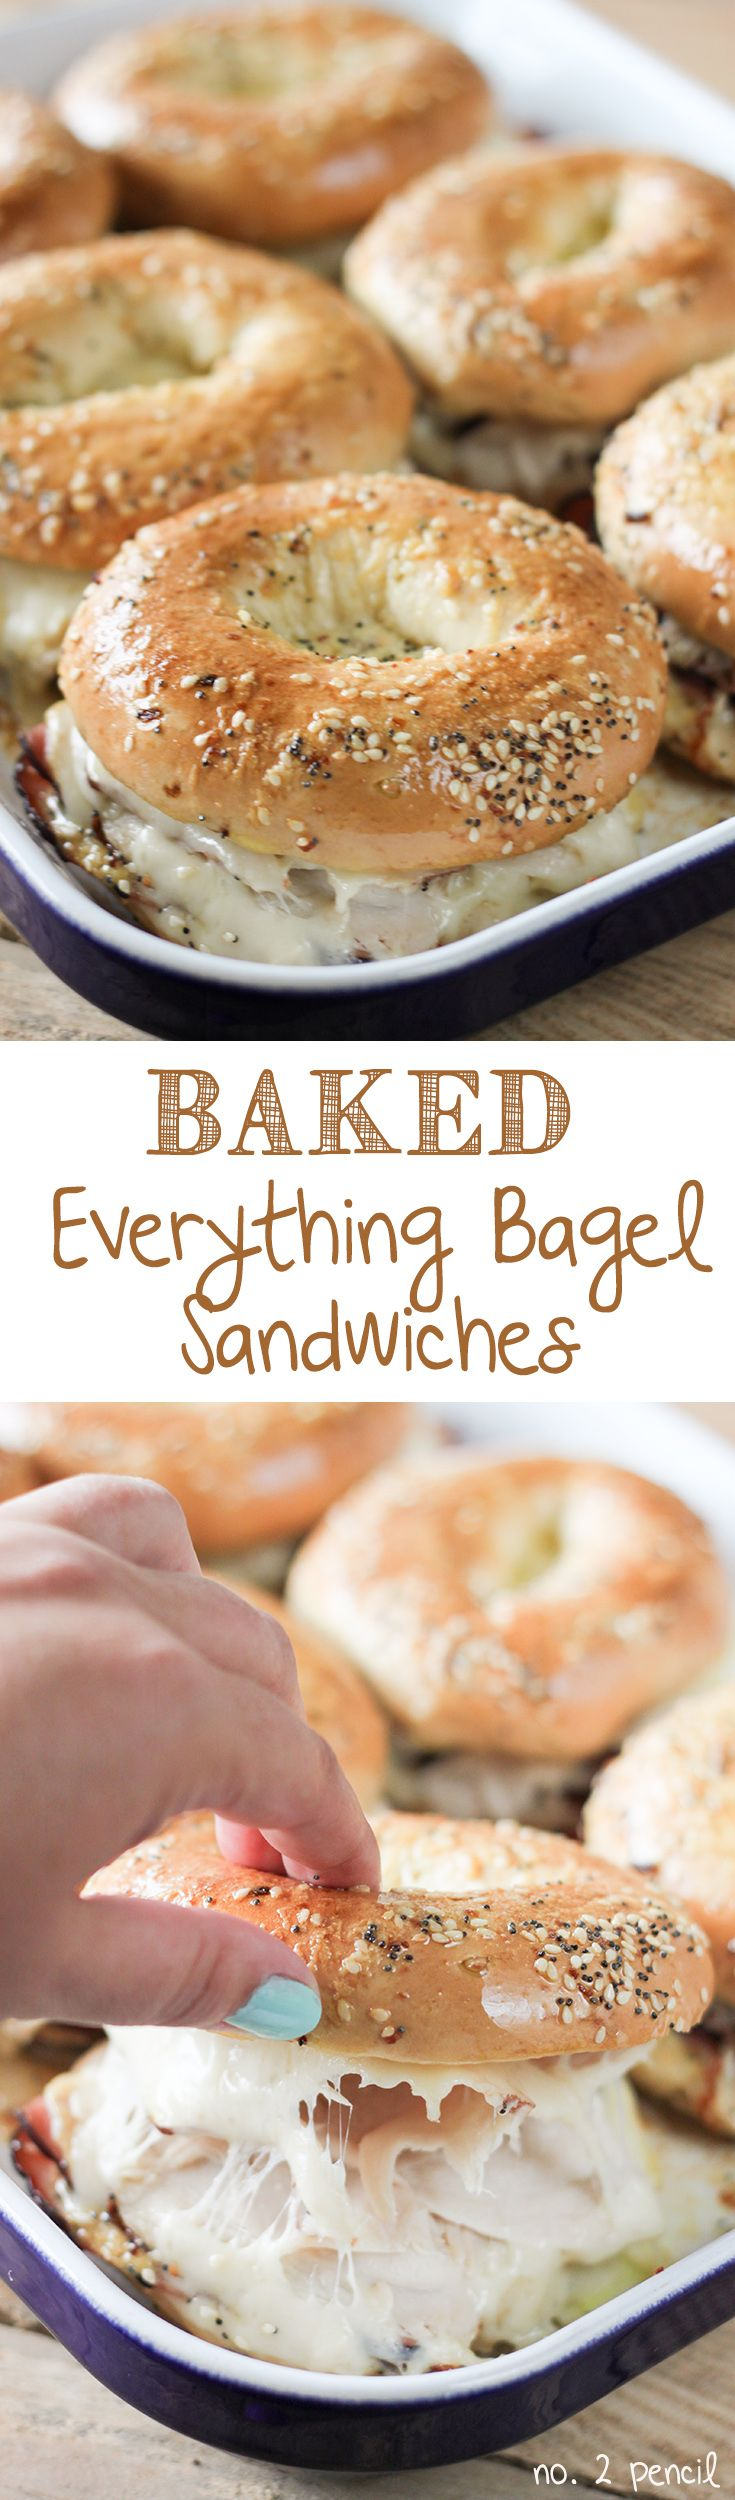 Baked Ham and Turkey Everything Bagel Sandwiches